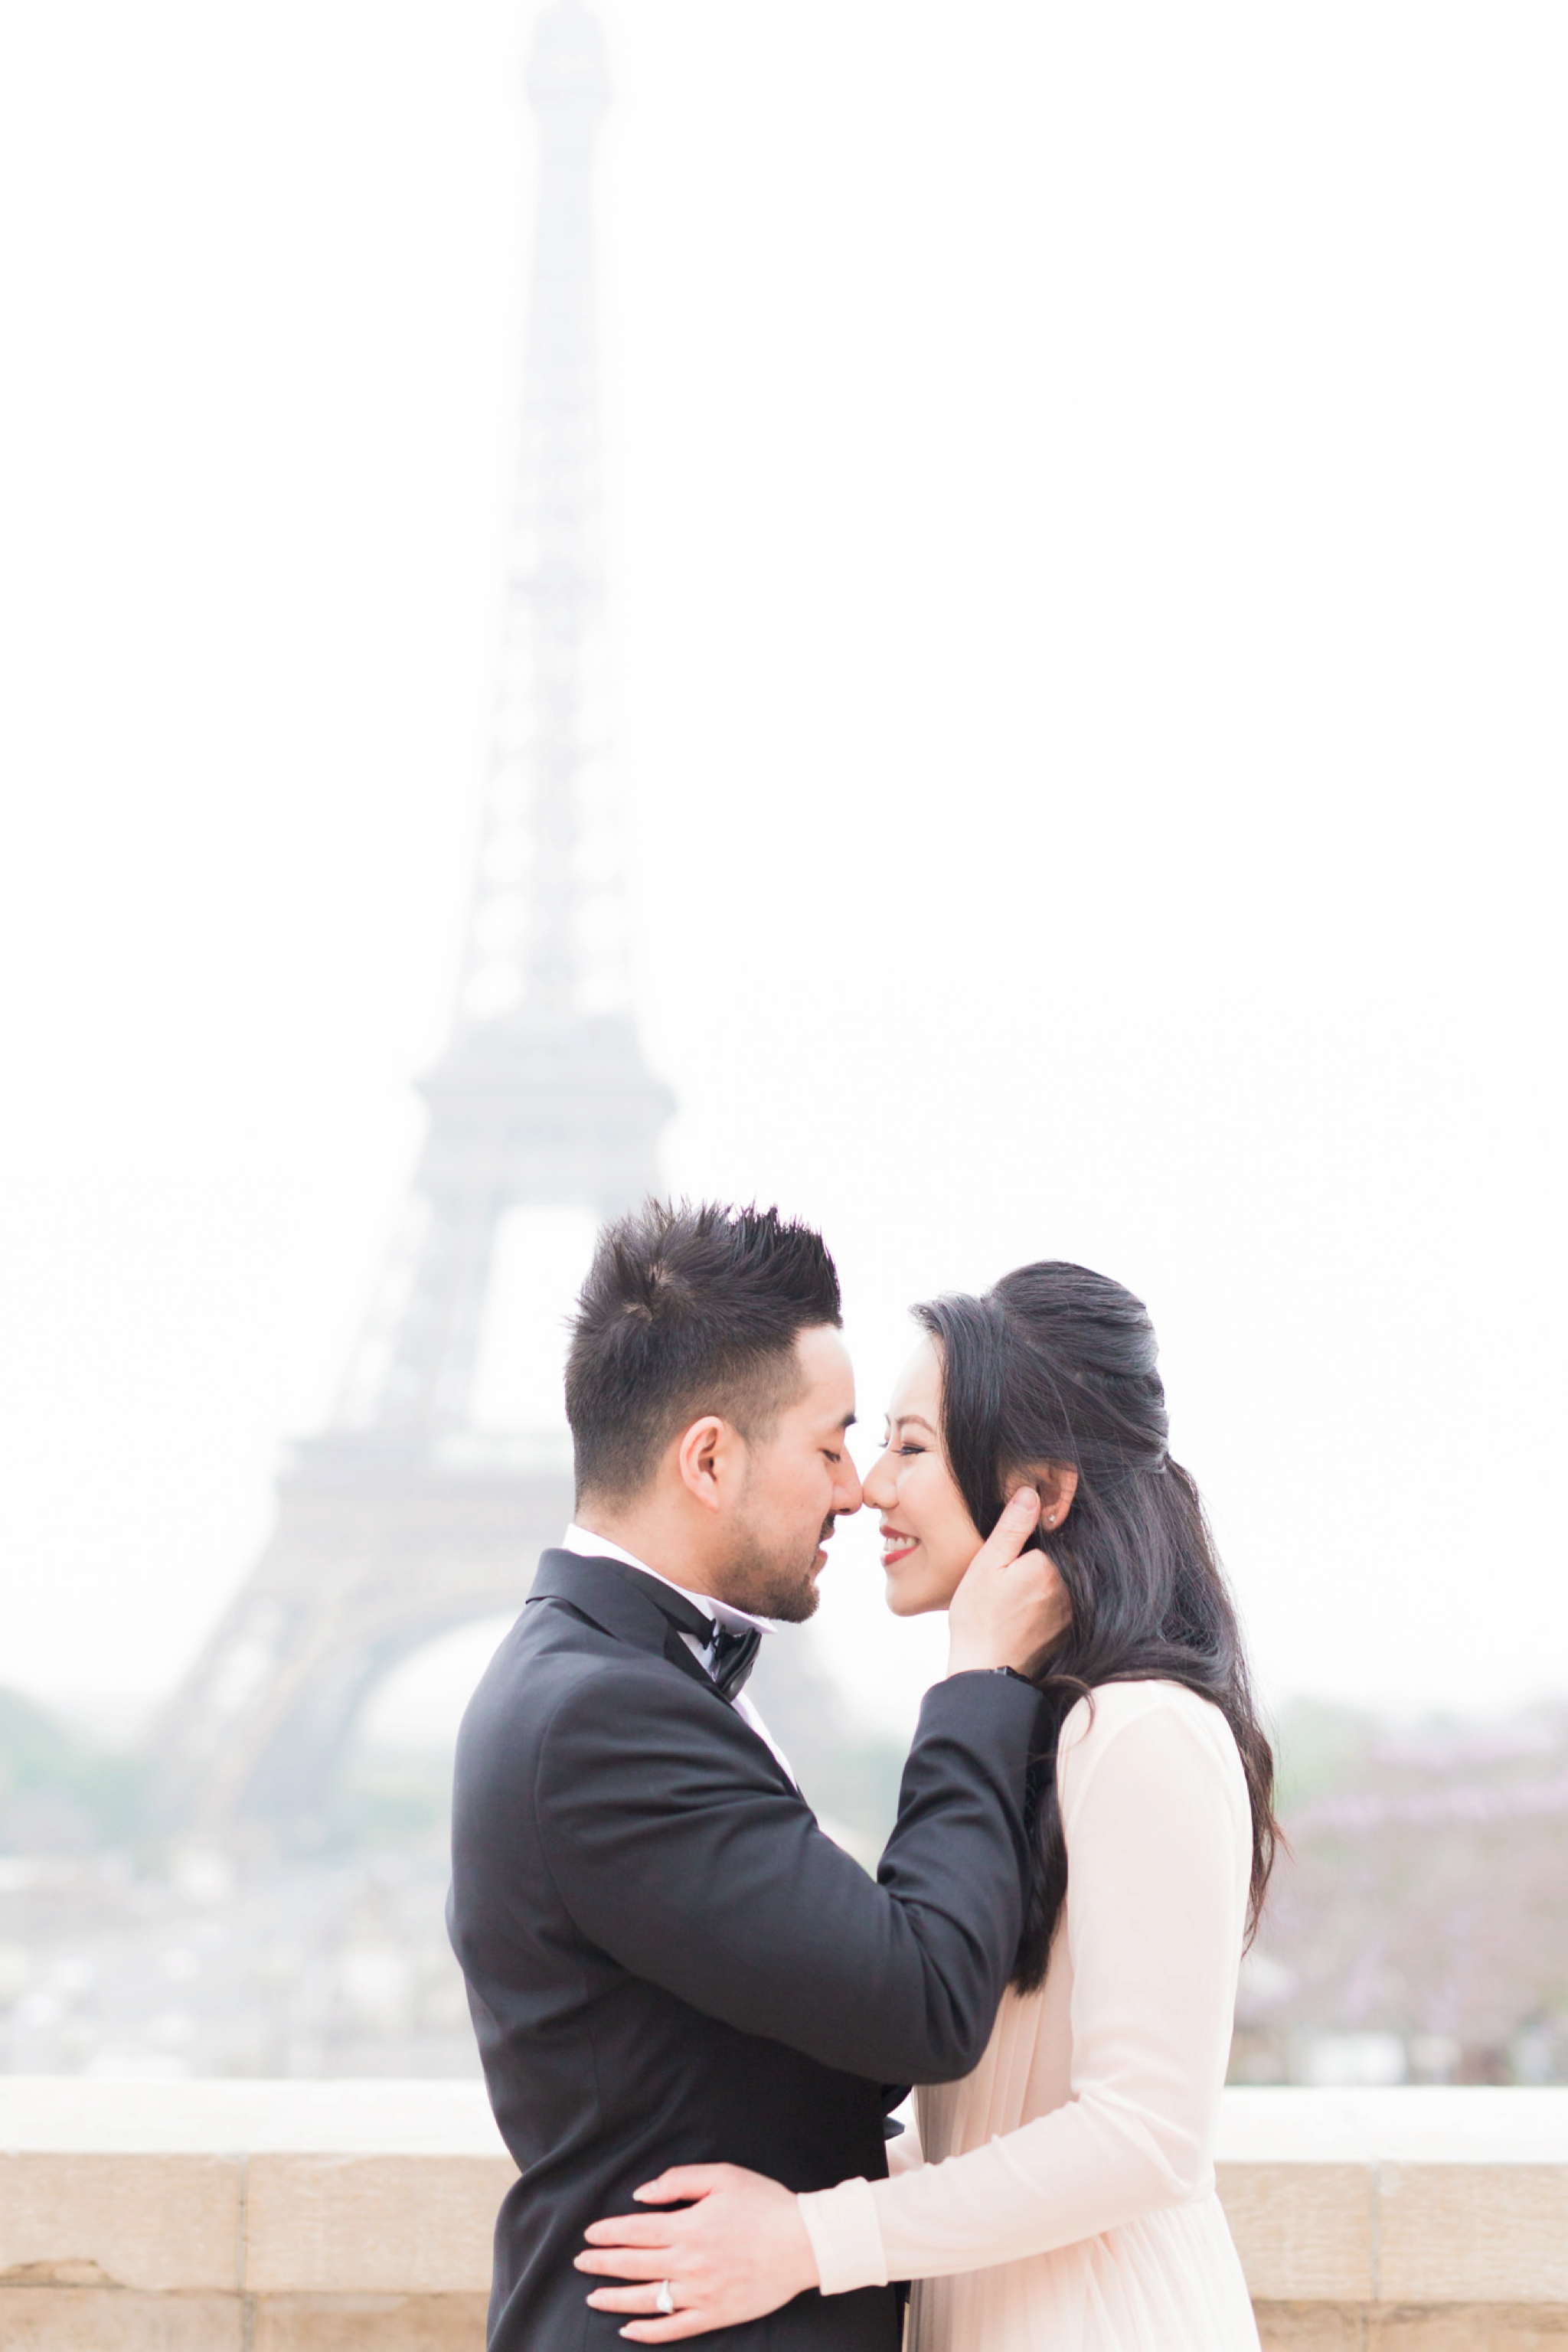 Suzanne_li_photography_paris_engagement_shoot_0031.jpg